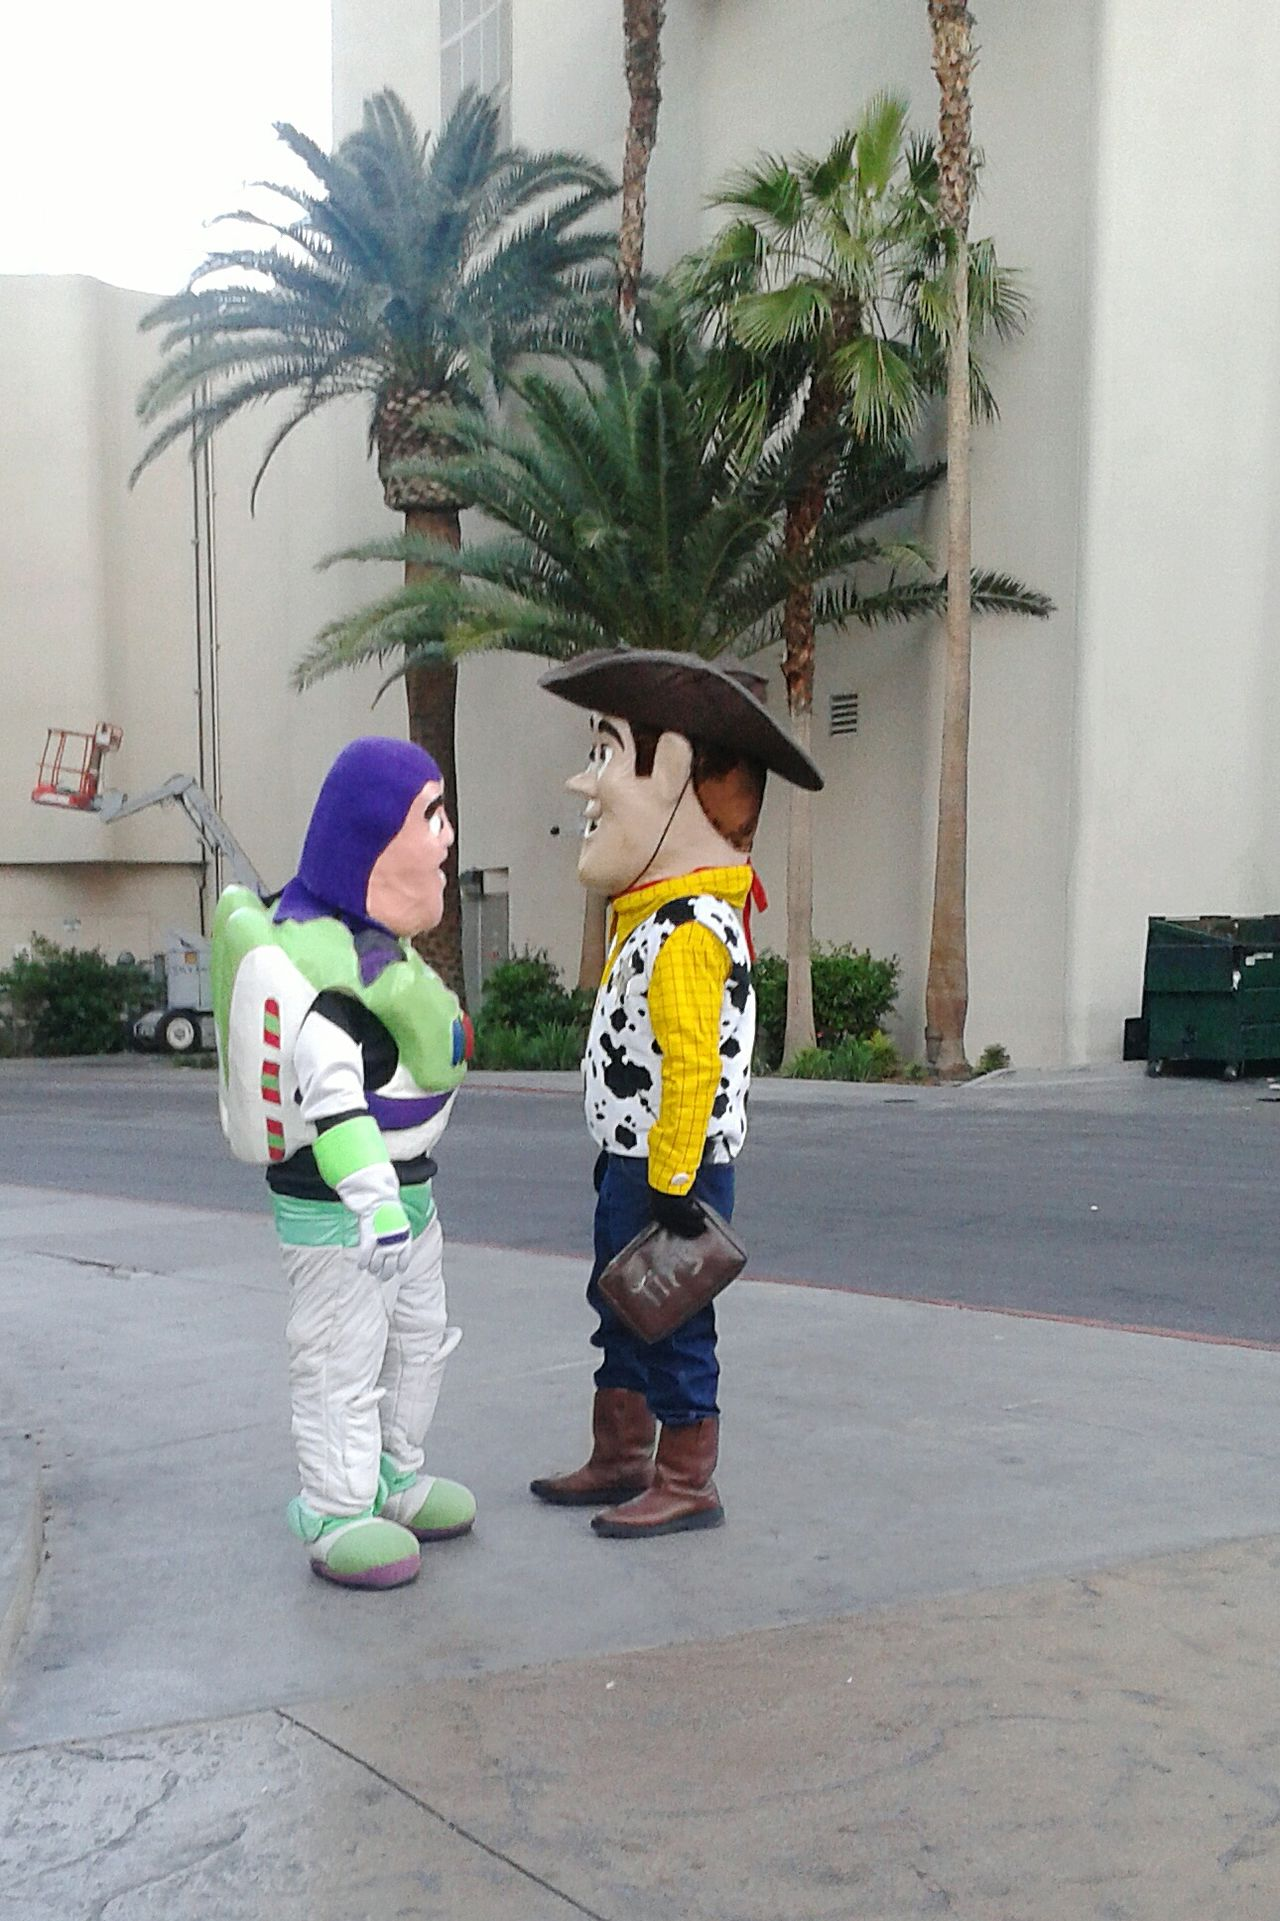 Hi buddy! How is it going todady? Everyday Emotion Lasvegas Boulevard Las Vegas Toystory Street Photography The Street Photographer - 2016 EyeEm Awards Feel The Journey Original Experiences People Together Two Is Better Than One Enjoy The New Normal